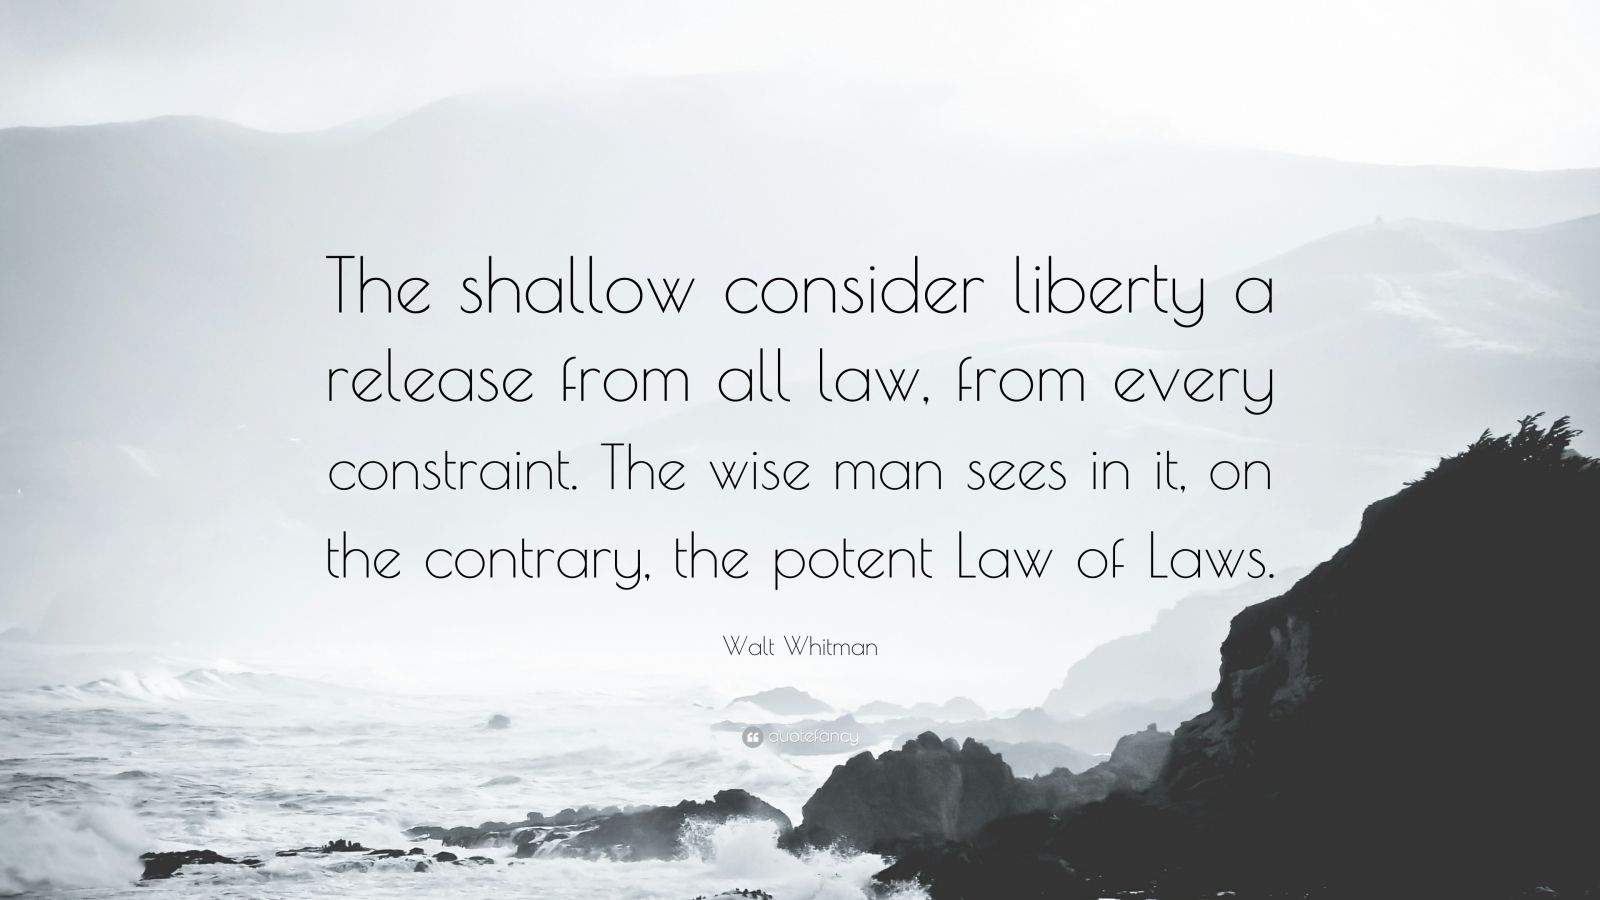 """Walt Whitman Quote: """"The shallow consider liberty a release from all law, from every constraint. The wise man sees in it, on the contrary, the potent Law of Laws."""""""